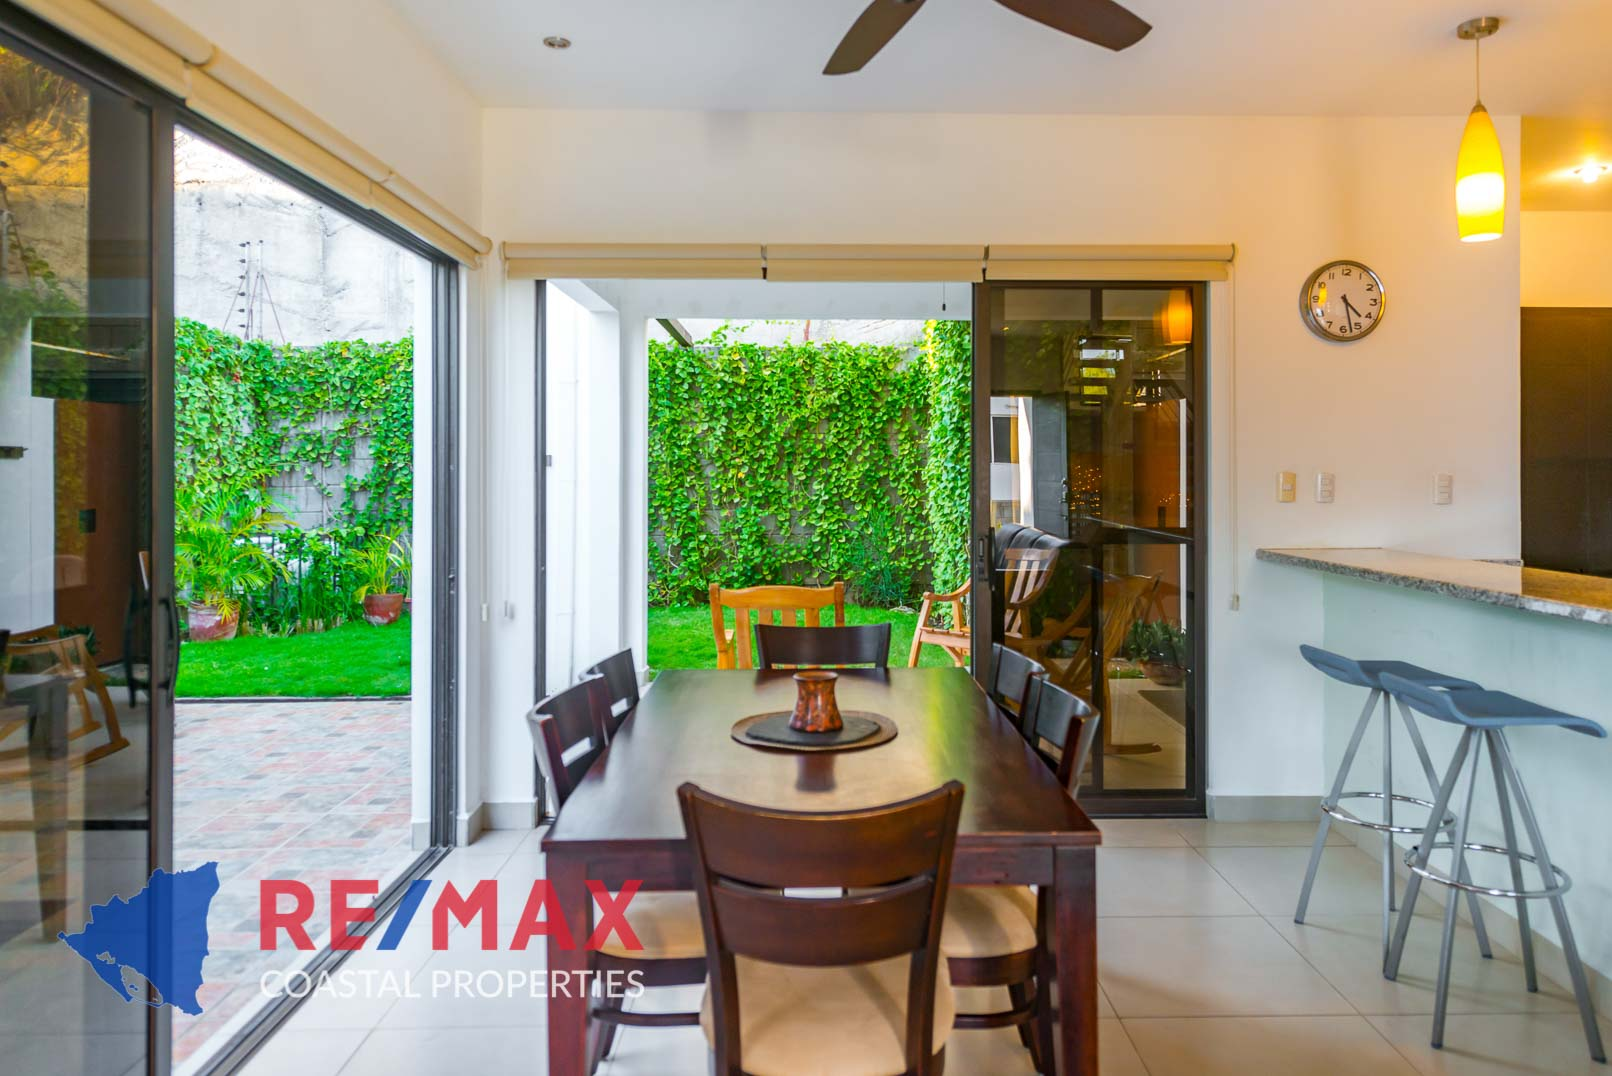 http://property-nicaragua.com/pedrodev/wp-content/uploads/2019/09/Townhomes-Miramar-13-REMAX-Coastal-Properties-5.jpg